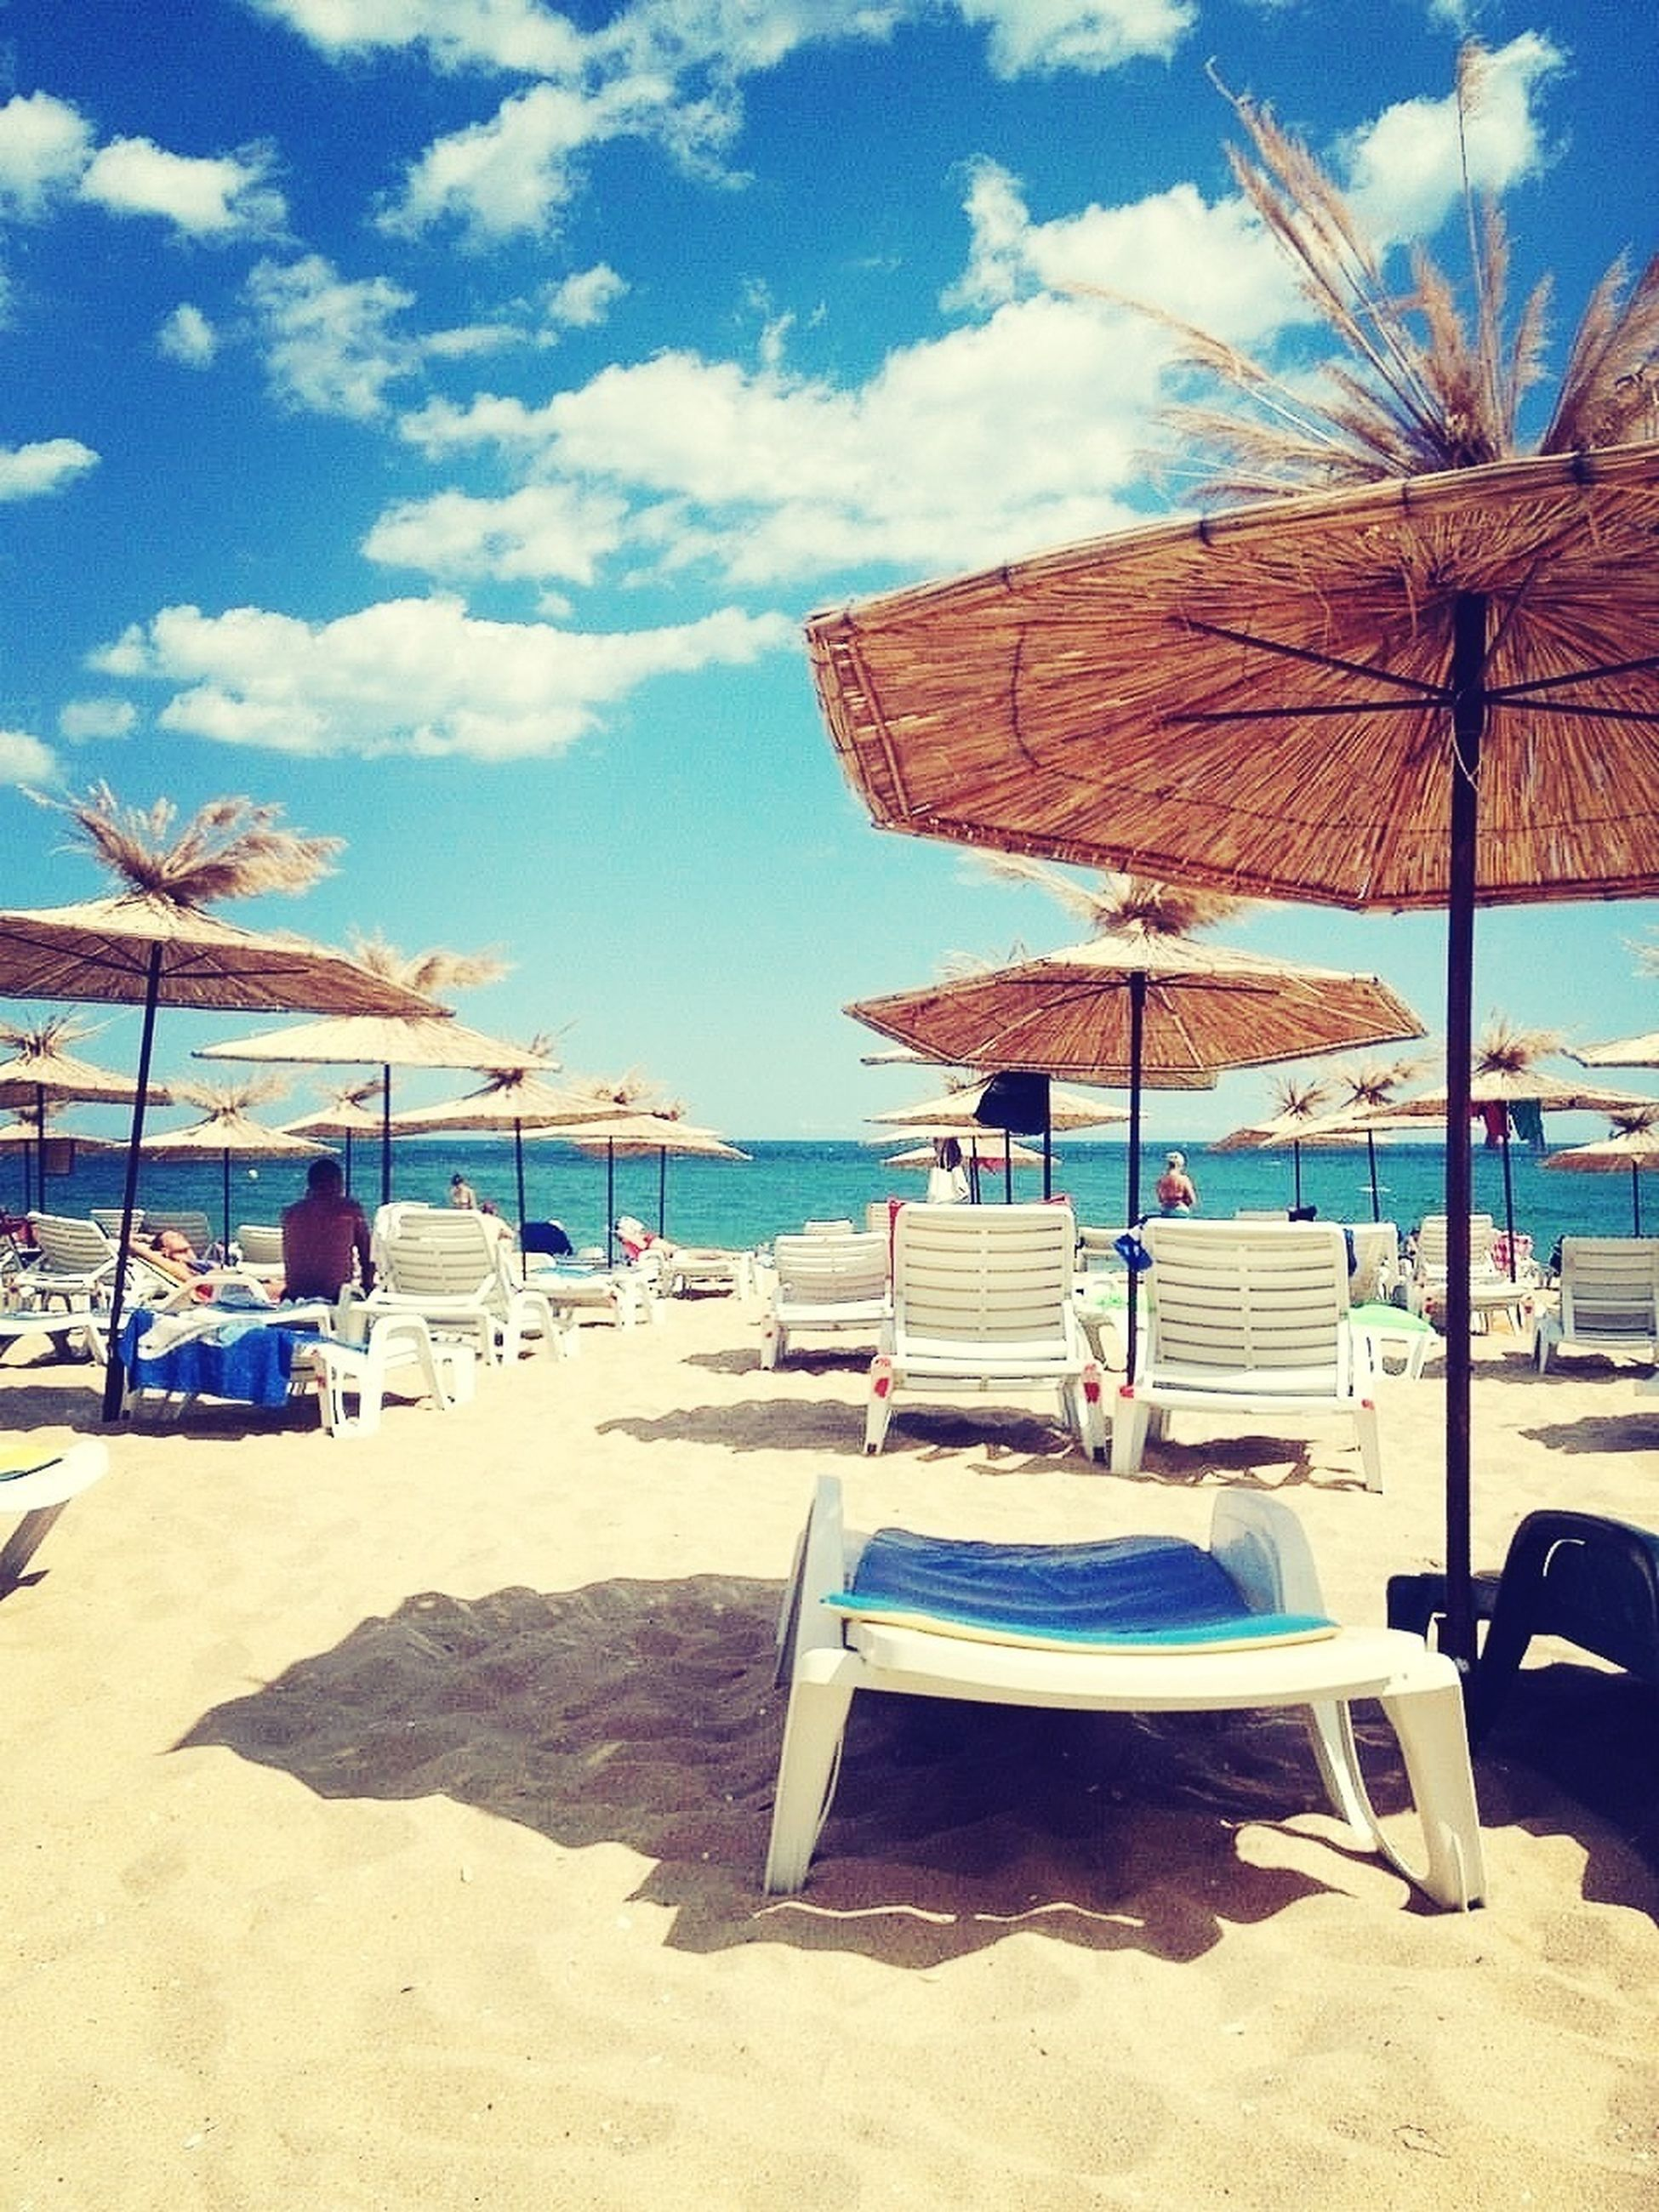 beach, sand, sea, shore, sky, beach umbrella, water, horizon over water, parasol, lounge chair, summer, sunshade, thatched roof, vacations, sunlight, blue, deck chair, relaxation, incidental people, absence